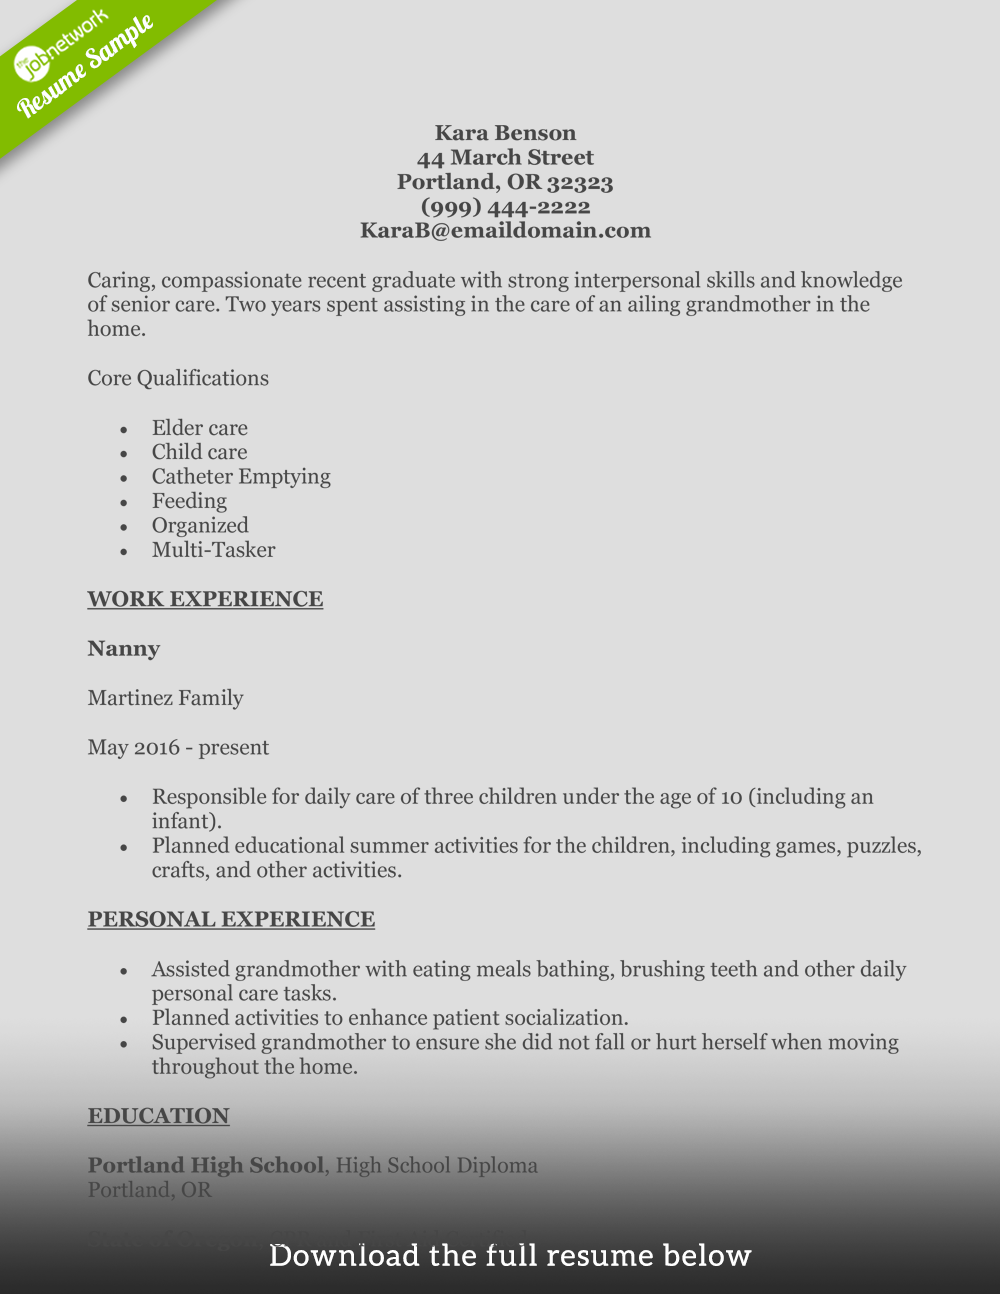 Home Health Aide Resume Entry Level  Child Care Resume Examples